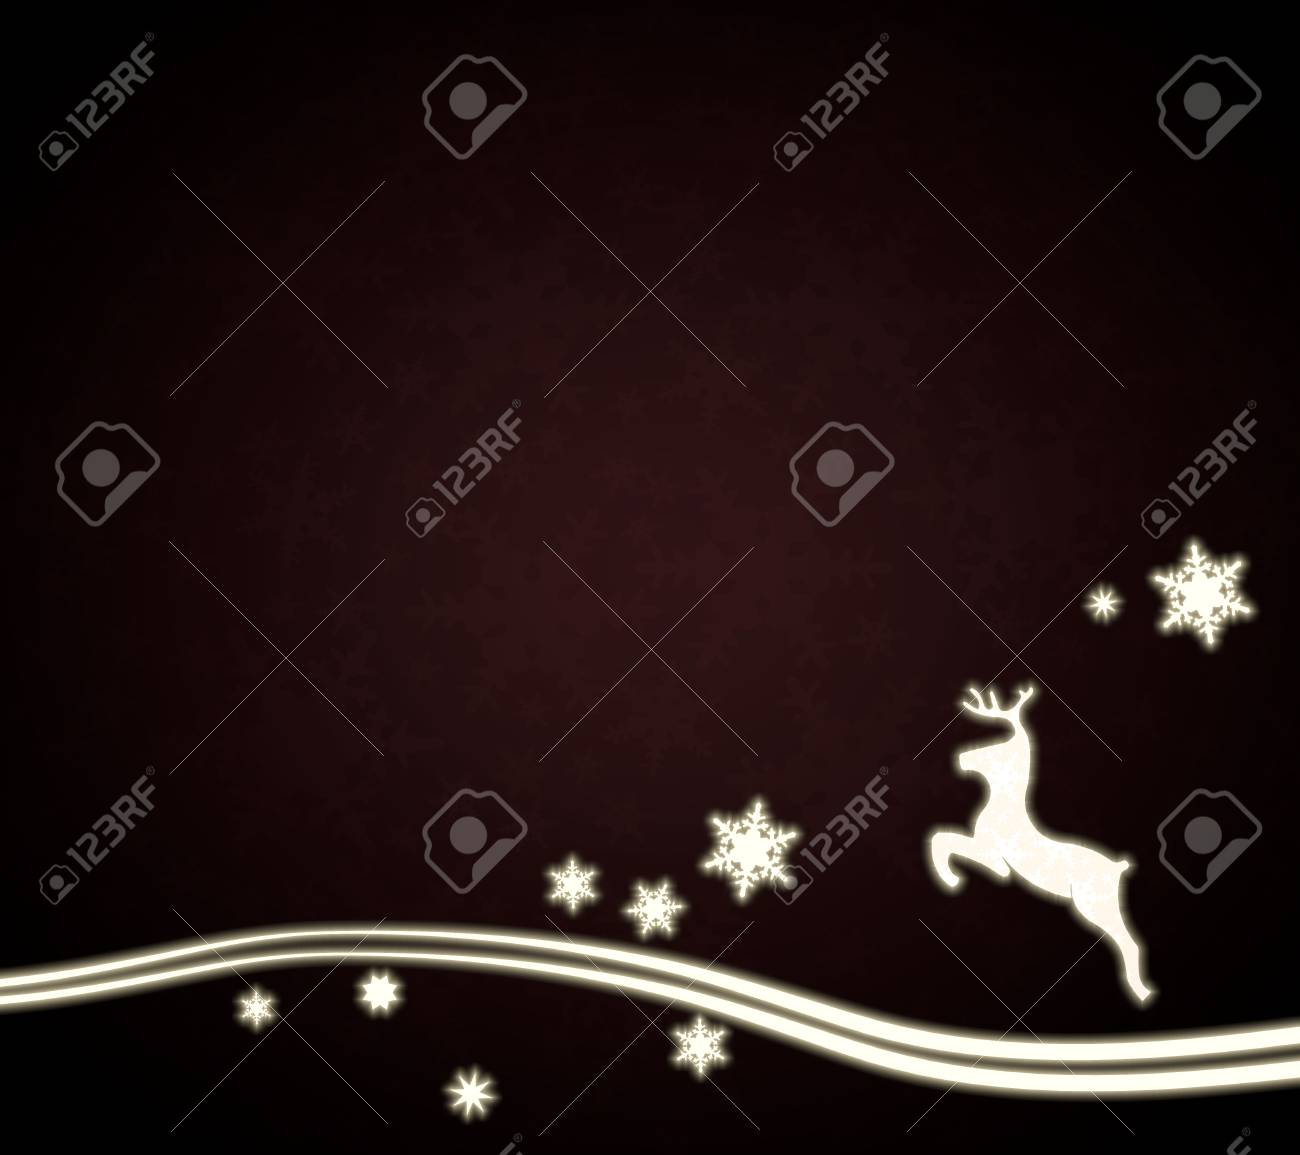 Festive Noble Deer Template In Dark Red With Christmas Snowflakes